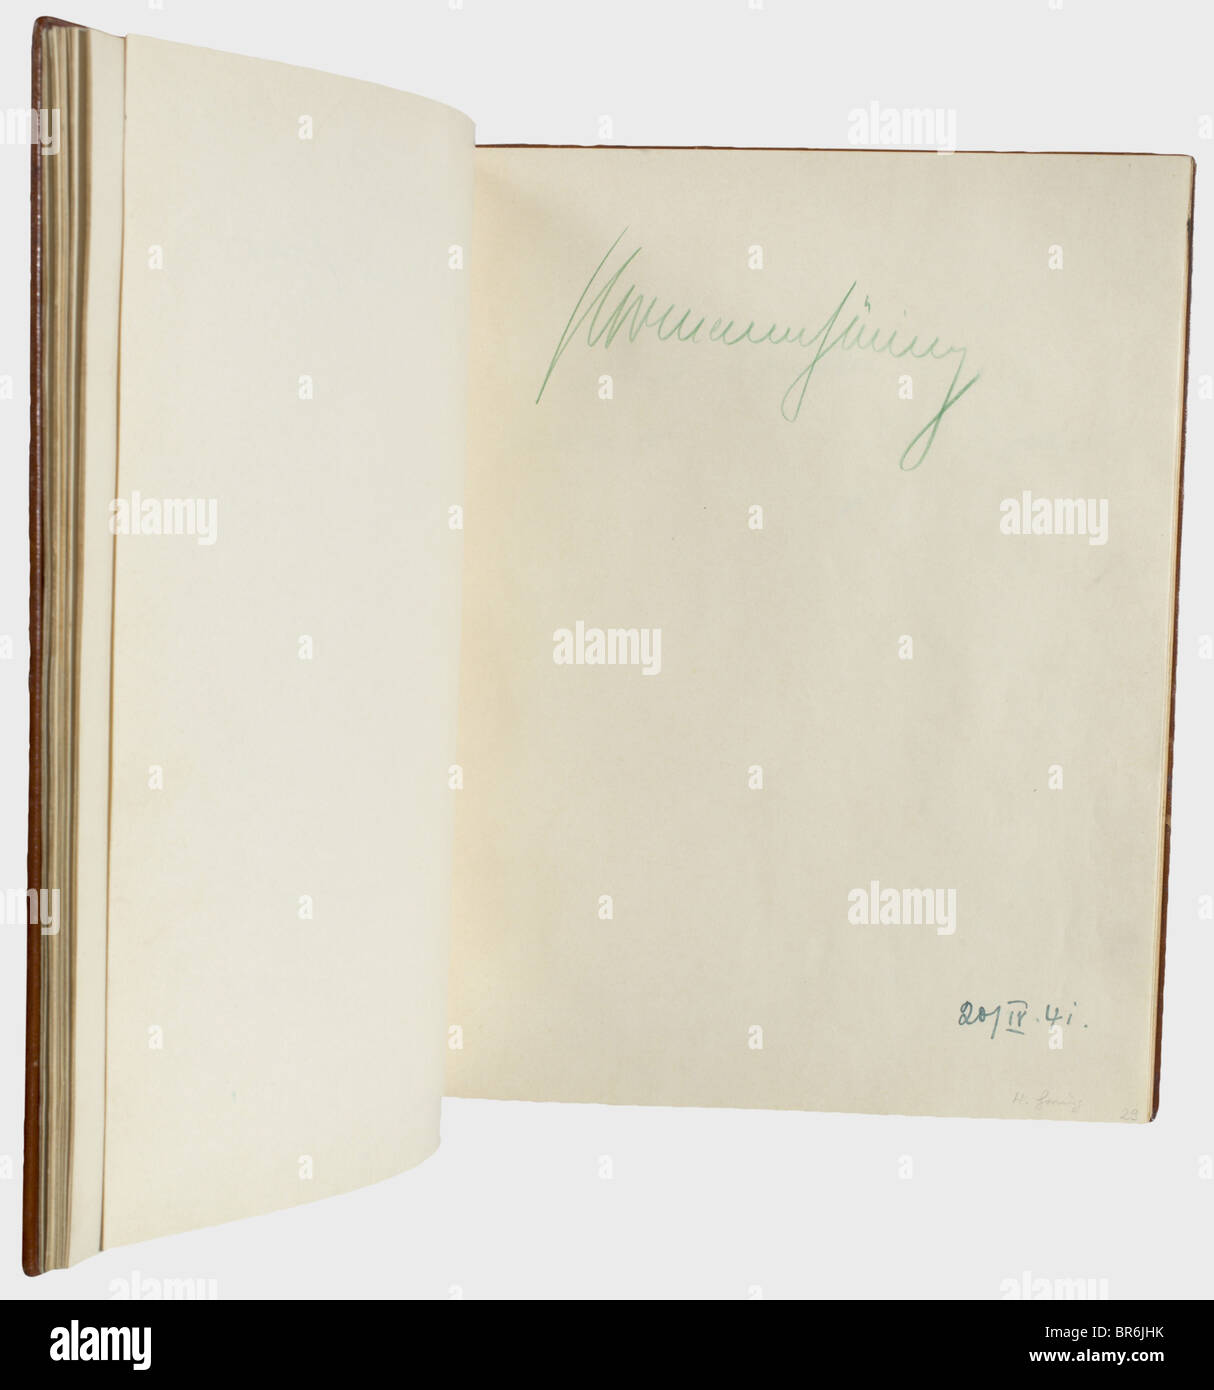 A guest book of the Panhans hotel on the Semmering., Brown leather cover with gold impression and gilt edging, on Stock Photo